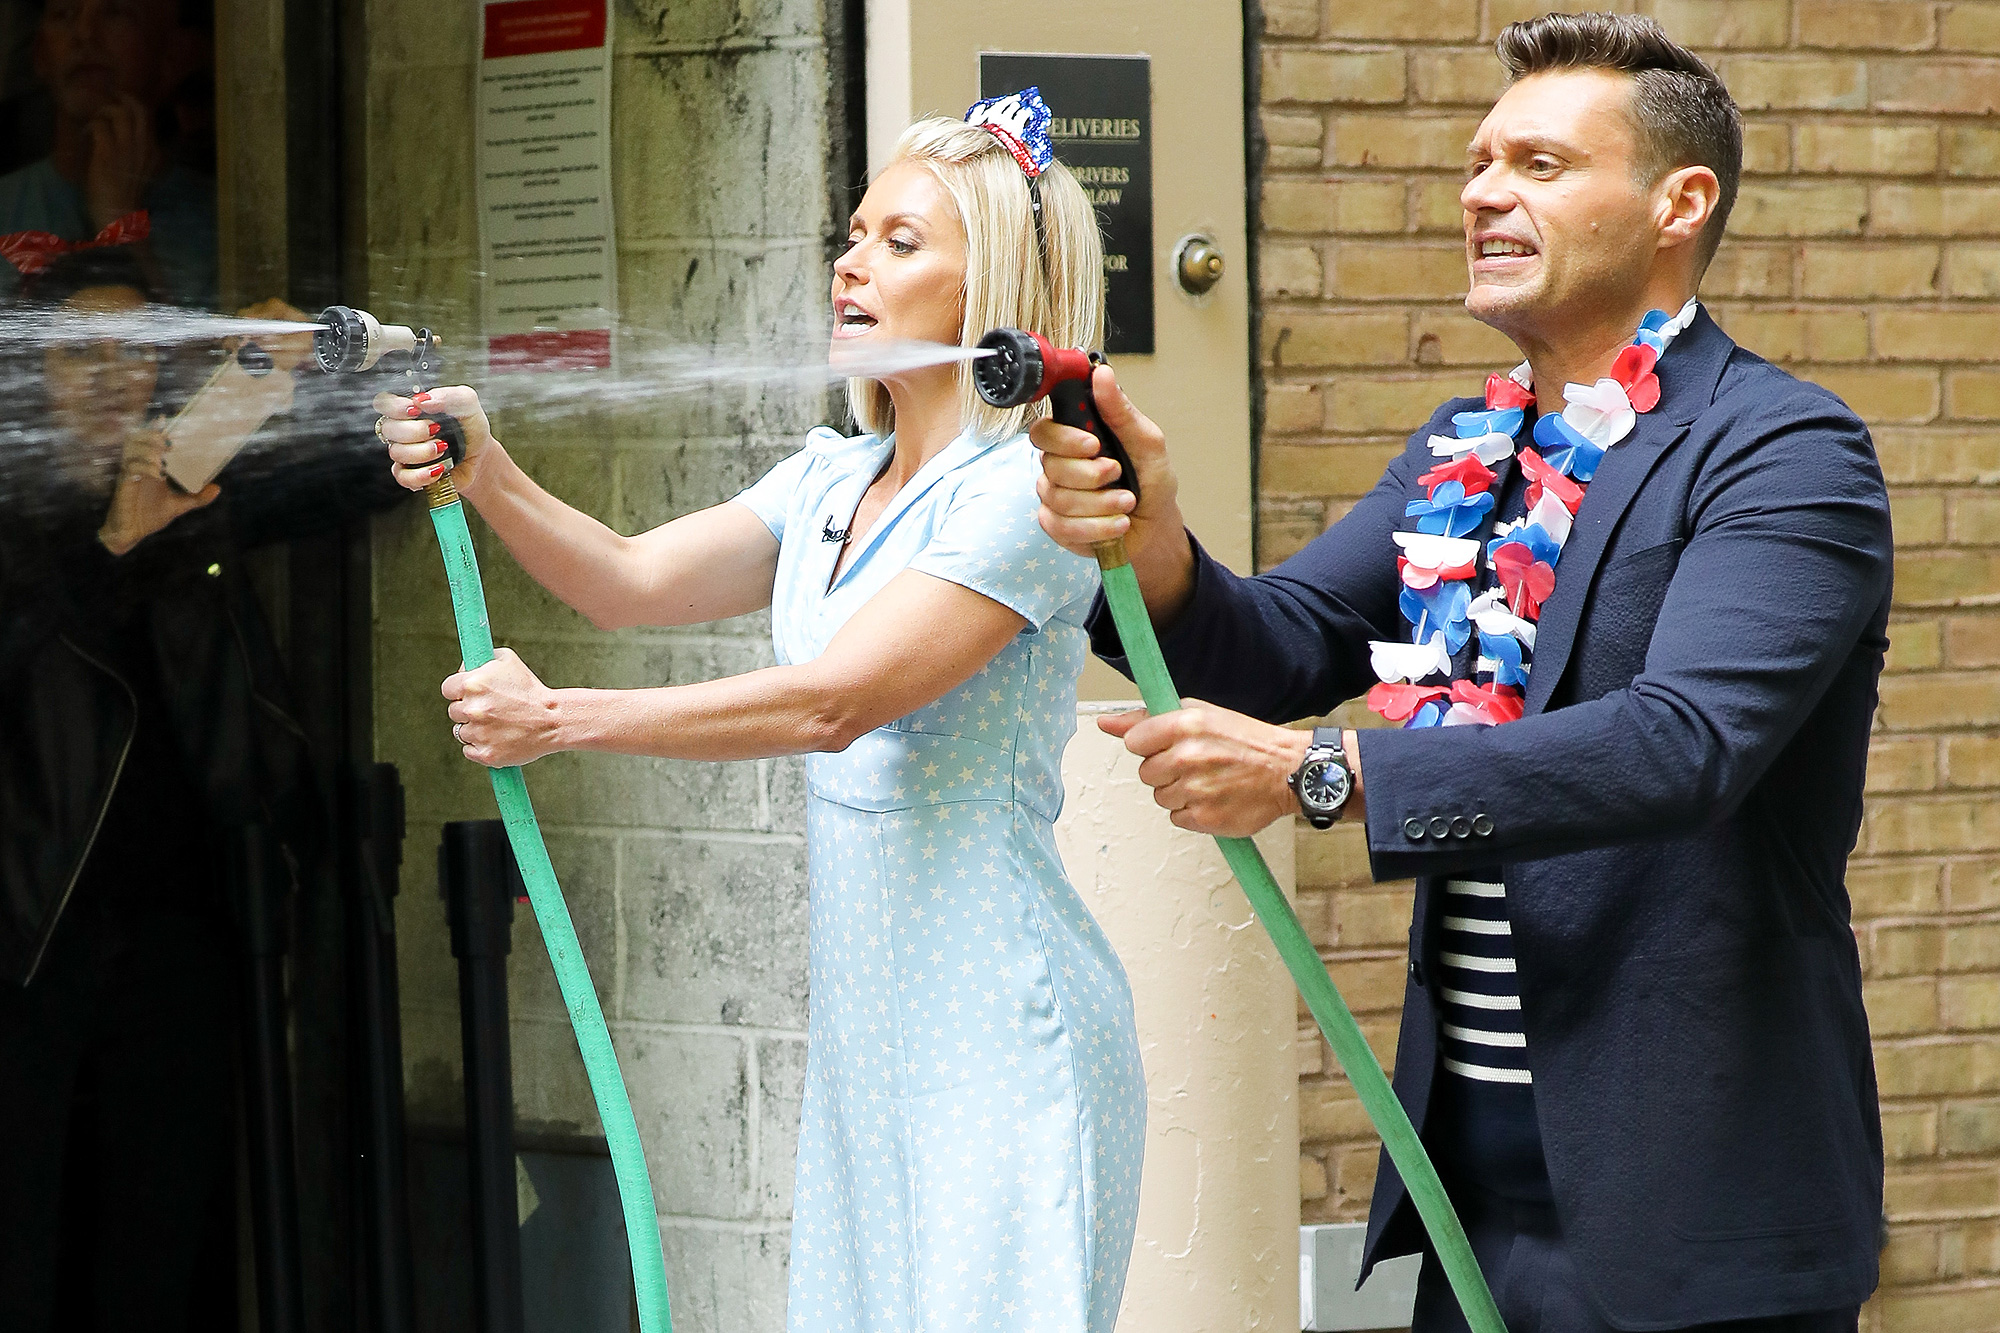 EXCLUSIVE: Kelly Ripa and Ryan Seacrest are spotted having fun with water hose in New York City